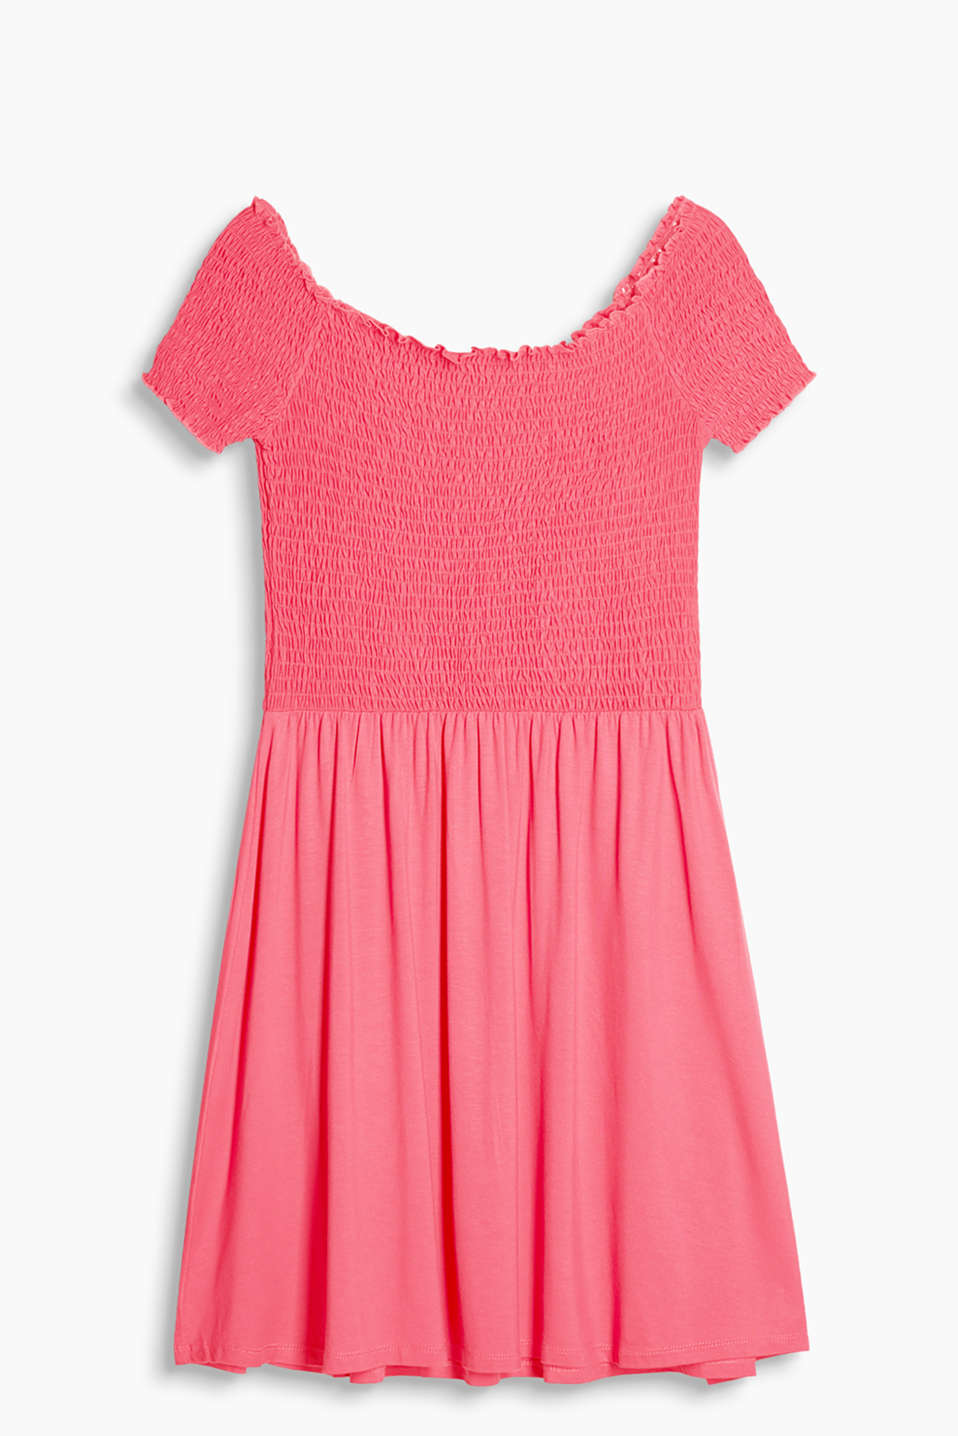 Flowing jersey dress with a smocked top section in a Carmen style